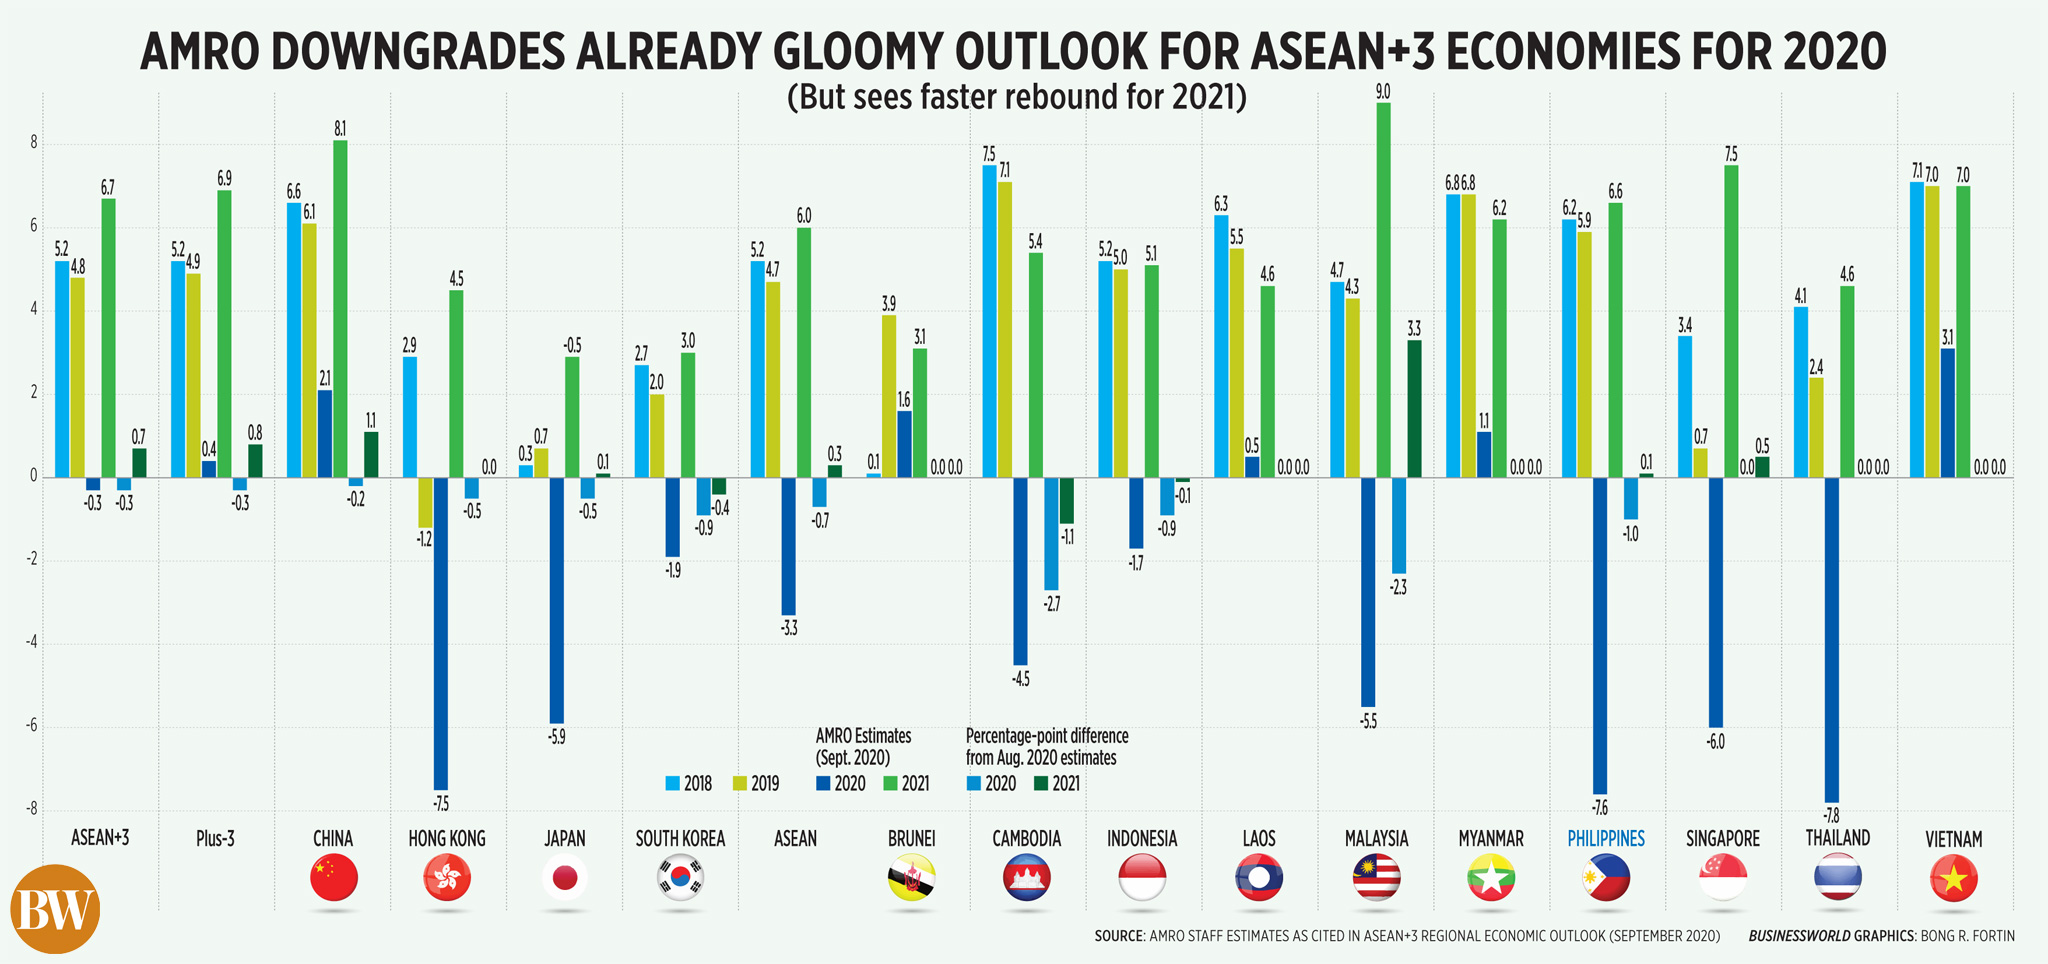 50378992492 14e4cfcdeb o - S&P sees PHL economy performing worst in SE Asia